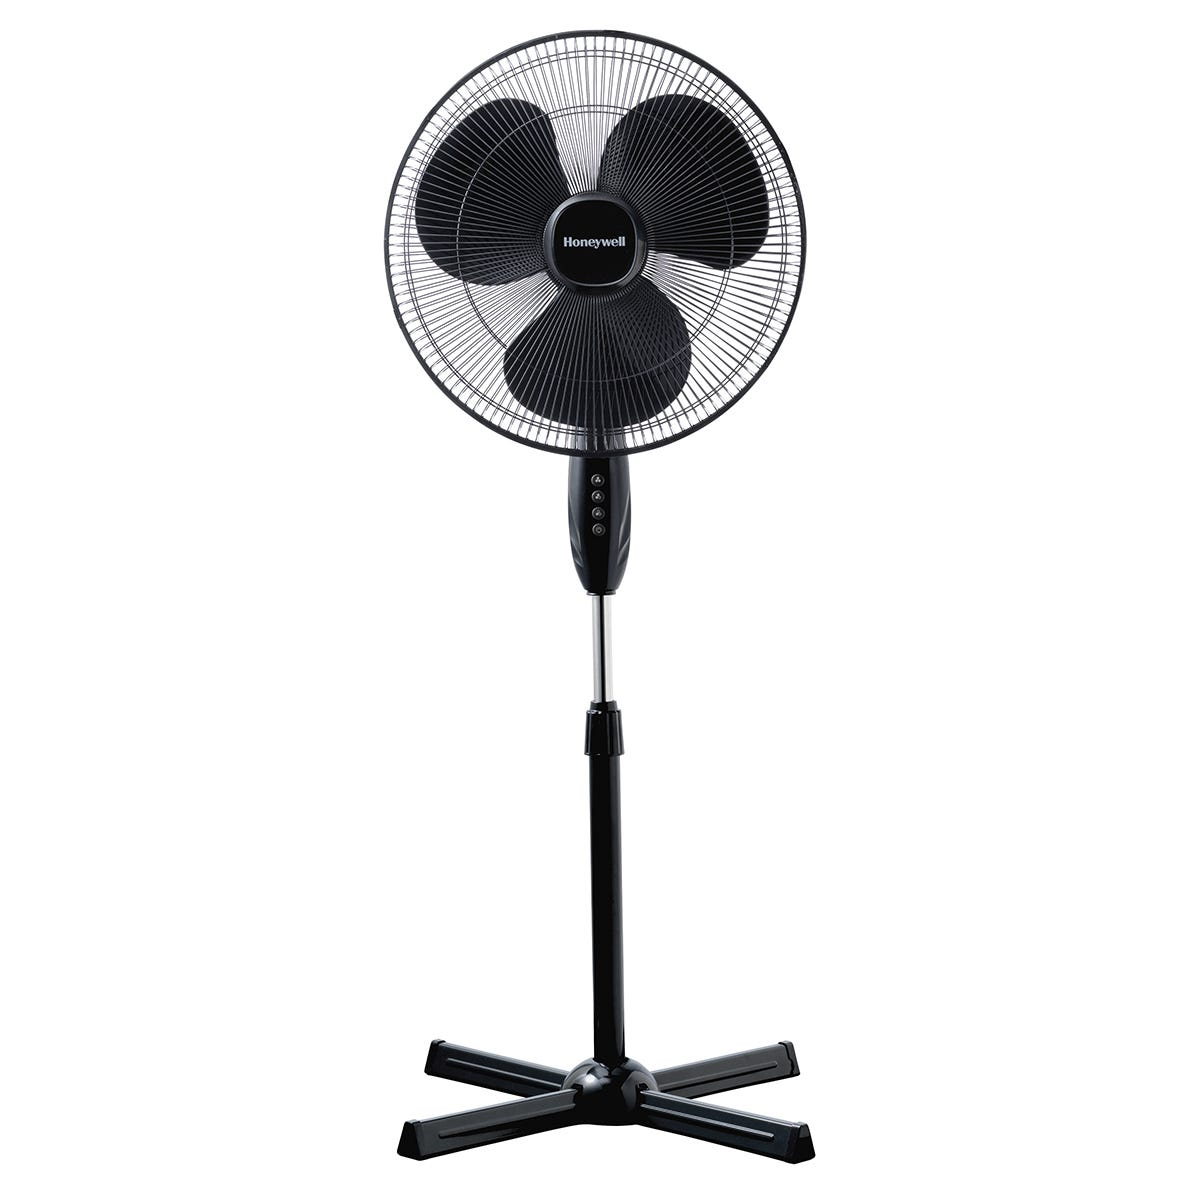 Honeywell Comfort Control Cooling Stand Fan - Black